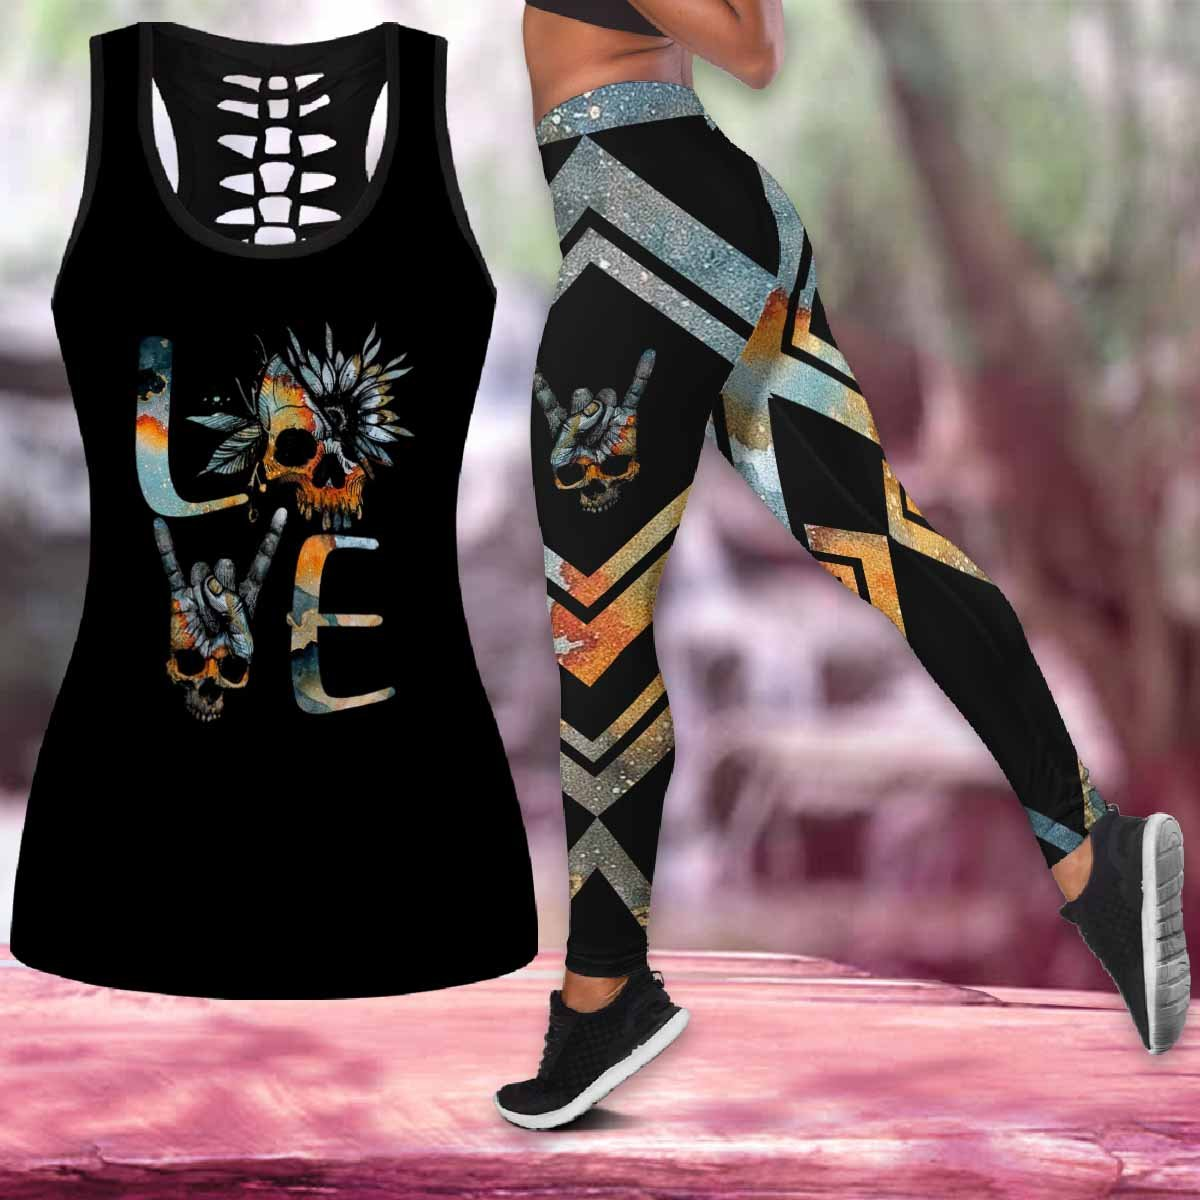 Love Skull Tattoo Combo Tank top Legging Outfit for women PL280308-Apparel-PL8386-S-S-Vibe Cosy™